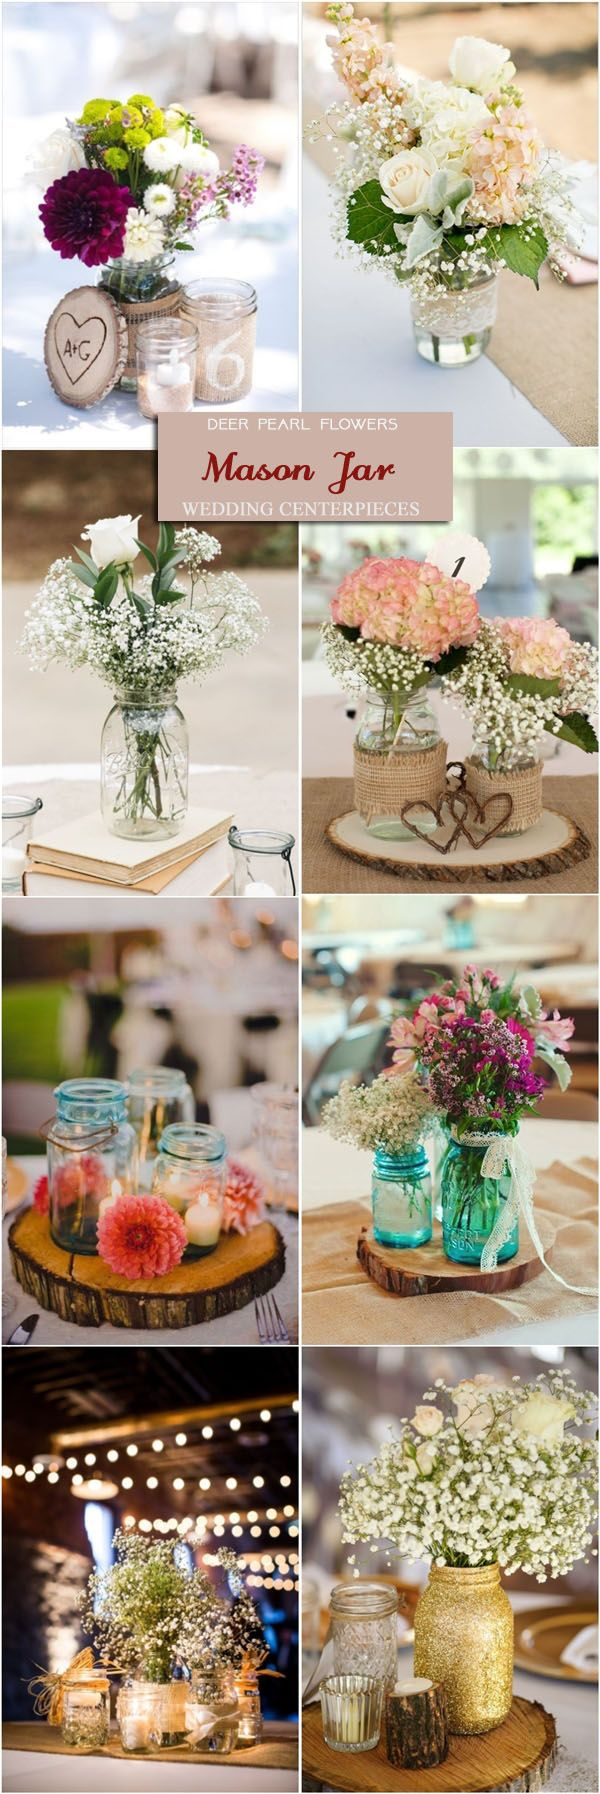 60 insanely wedding centerpiece ideas youll love rustic mason 60 insanely wedding centerpiece ideas youll love junglespirit Image collections